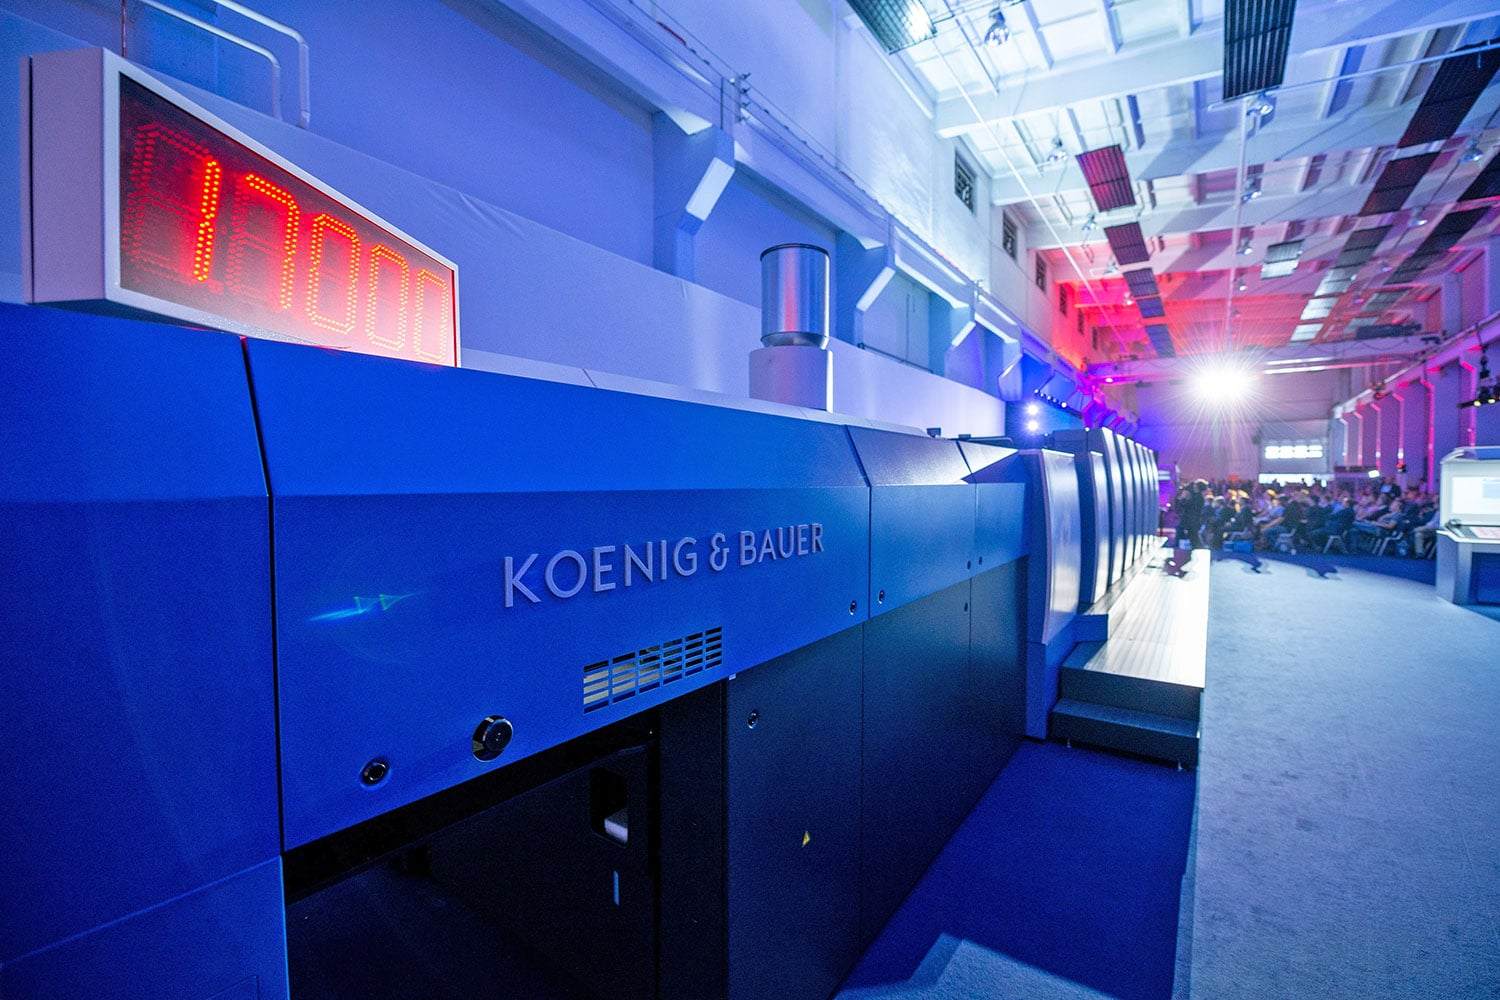 Koenig & Bauer 4.0 – Packaging & Connected Services - velocità di stampa a 17.000 fogli/ora